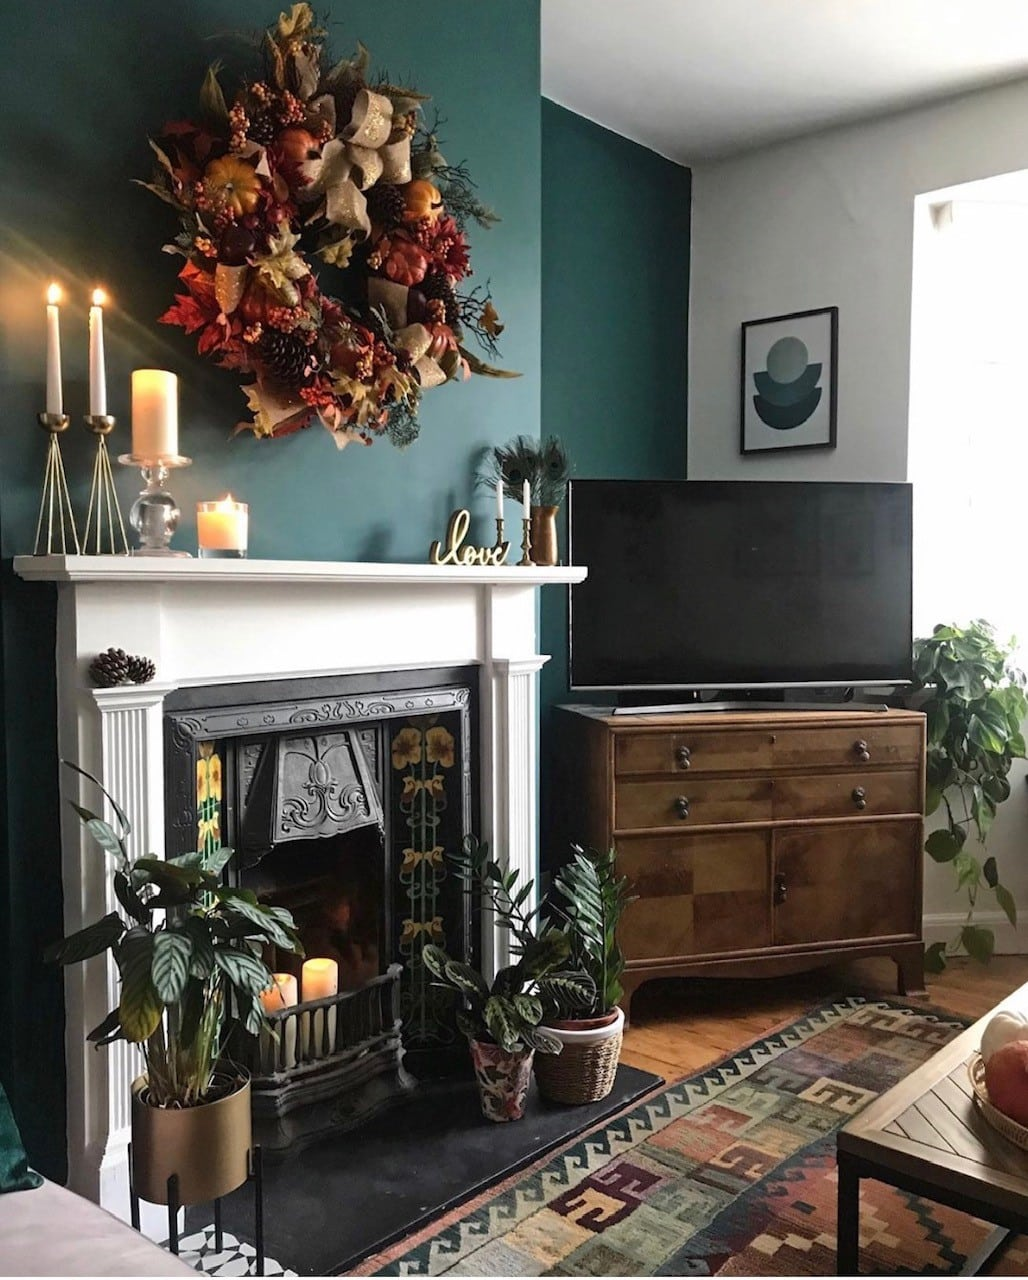 sustainable, sustainability, sustainable home, environment, environmentally friendly, upcycle, reuse, eco friendly, recycle, buy less, green wall, living room